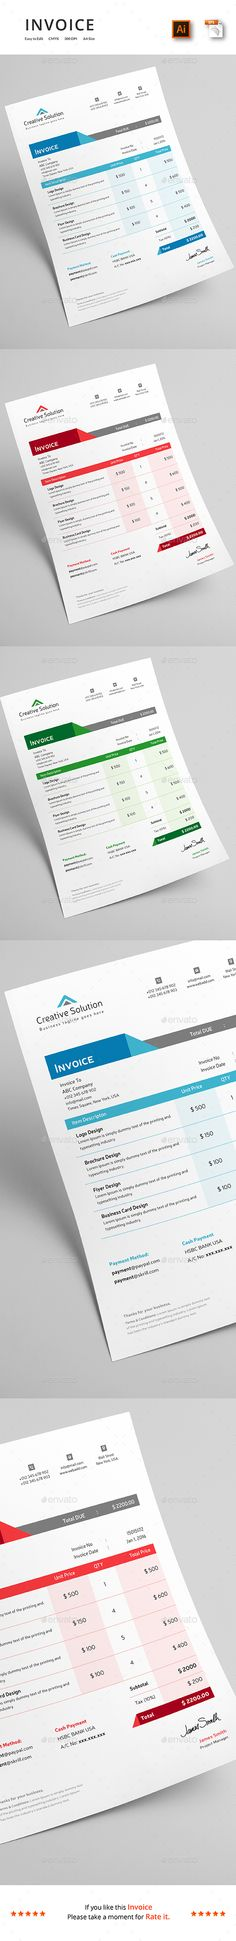 Professional Invoice - GraphicRiver Item for Sale Economy App - professional invoice template